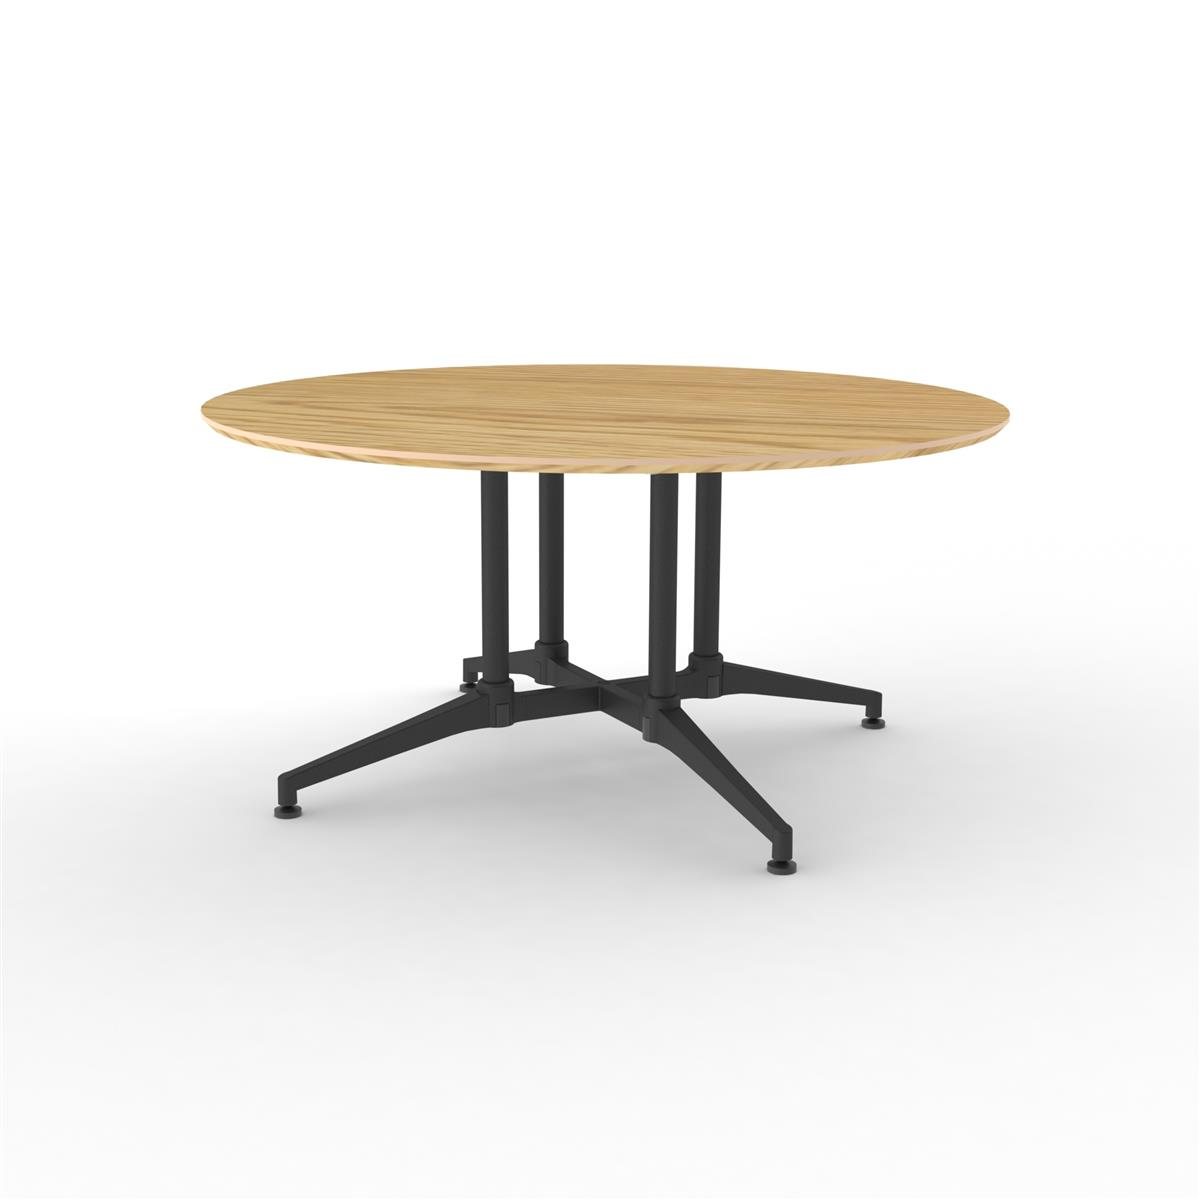 X1 Seamless Table Ø150 cm med eik finér & sort understell